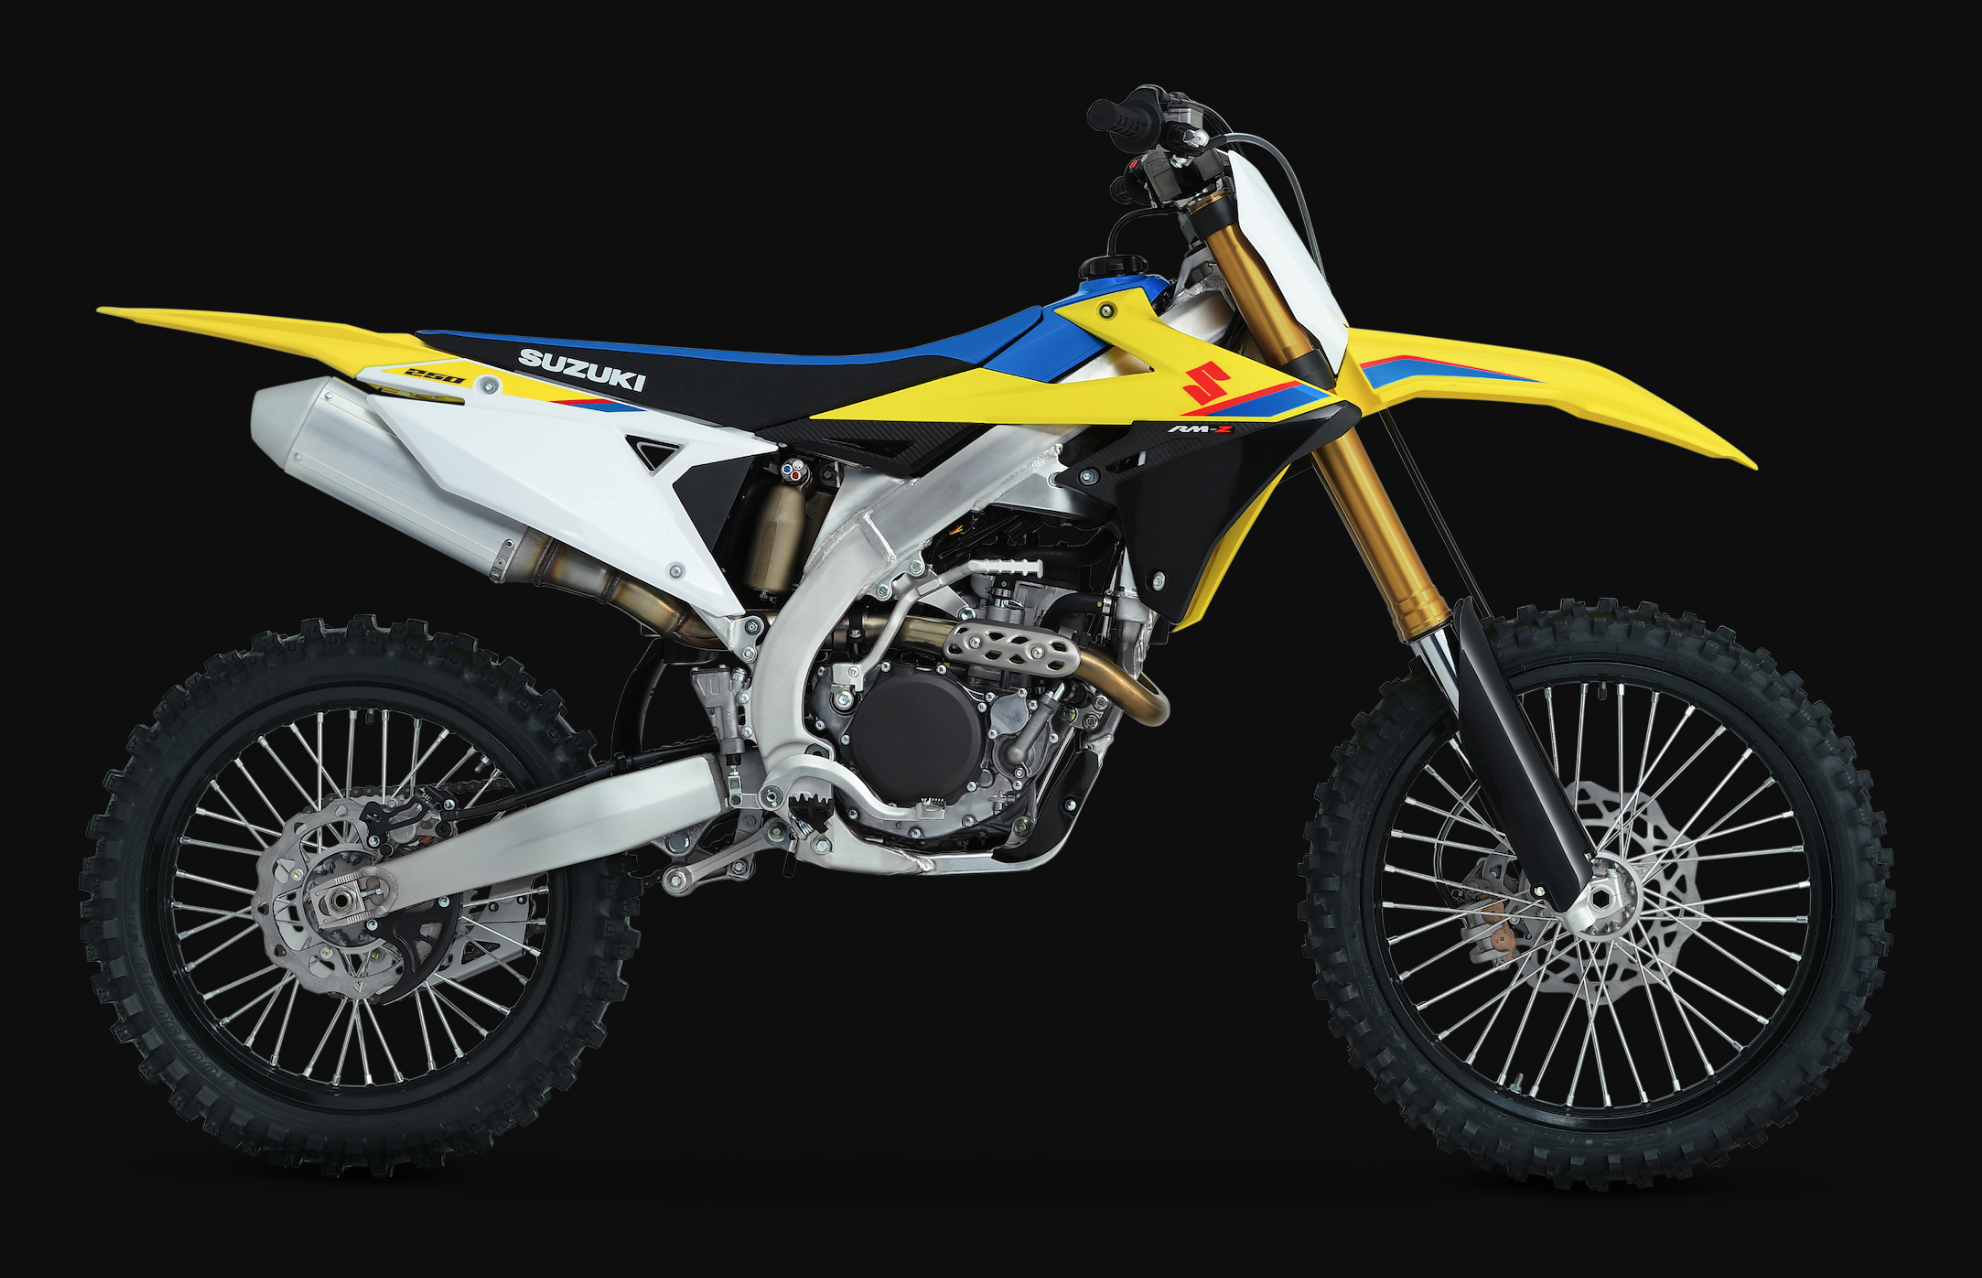 56 All New 2019 Suzuki Rmz Reviews for 2019 Suzuki Rmz